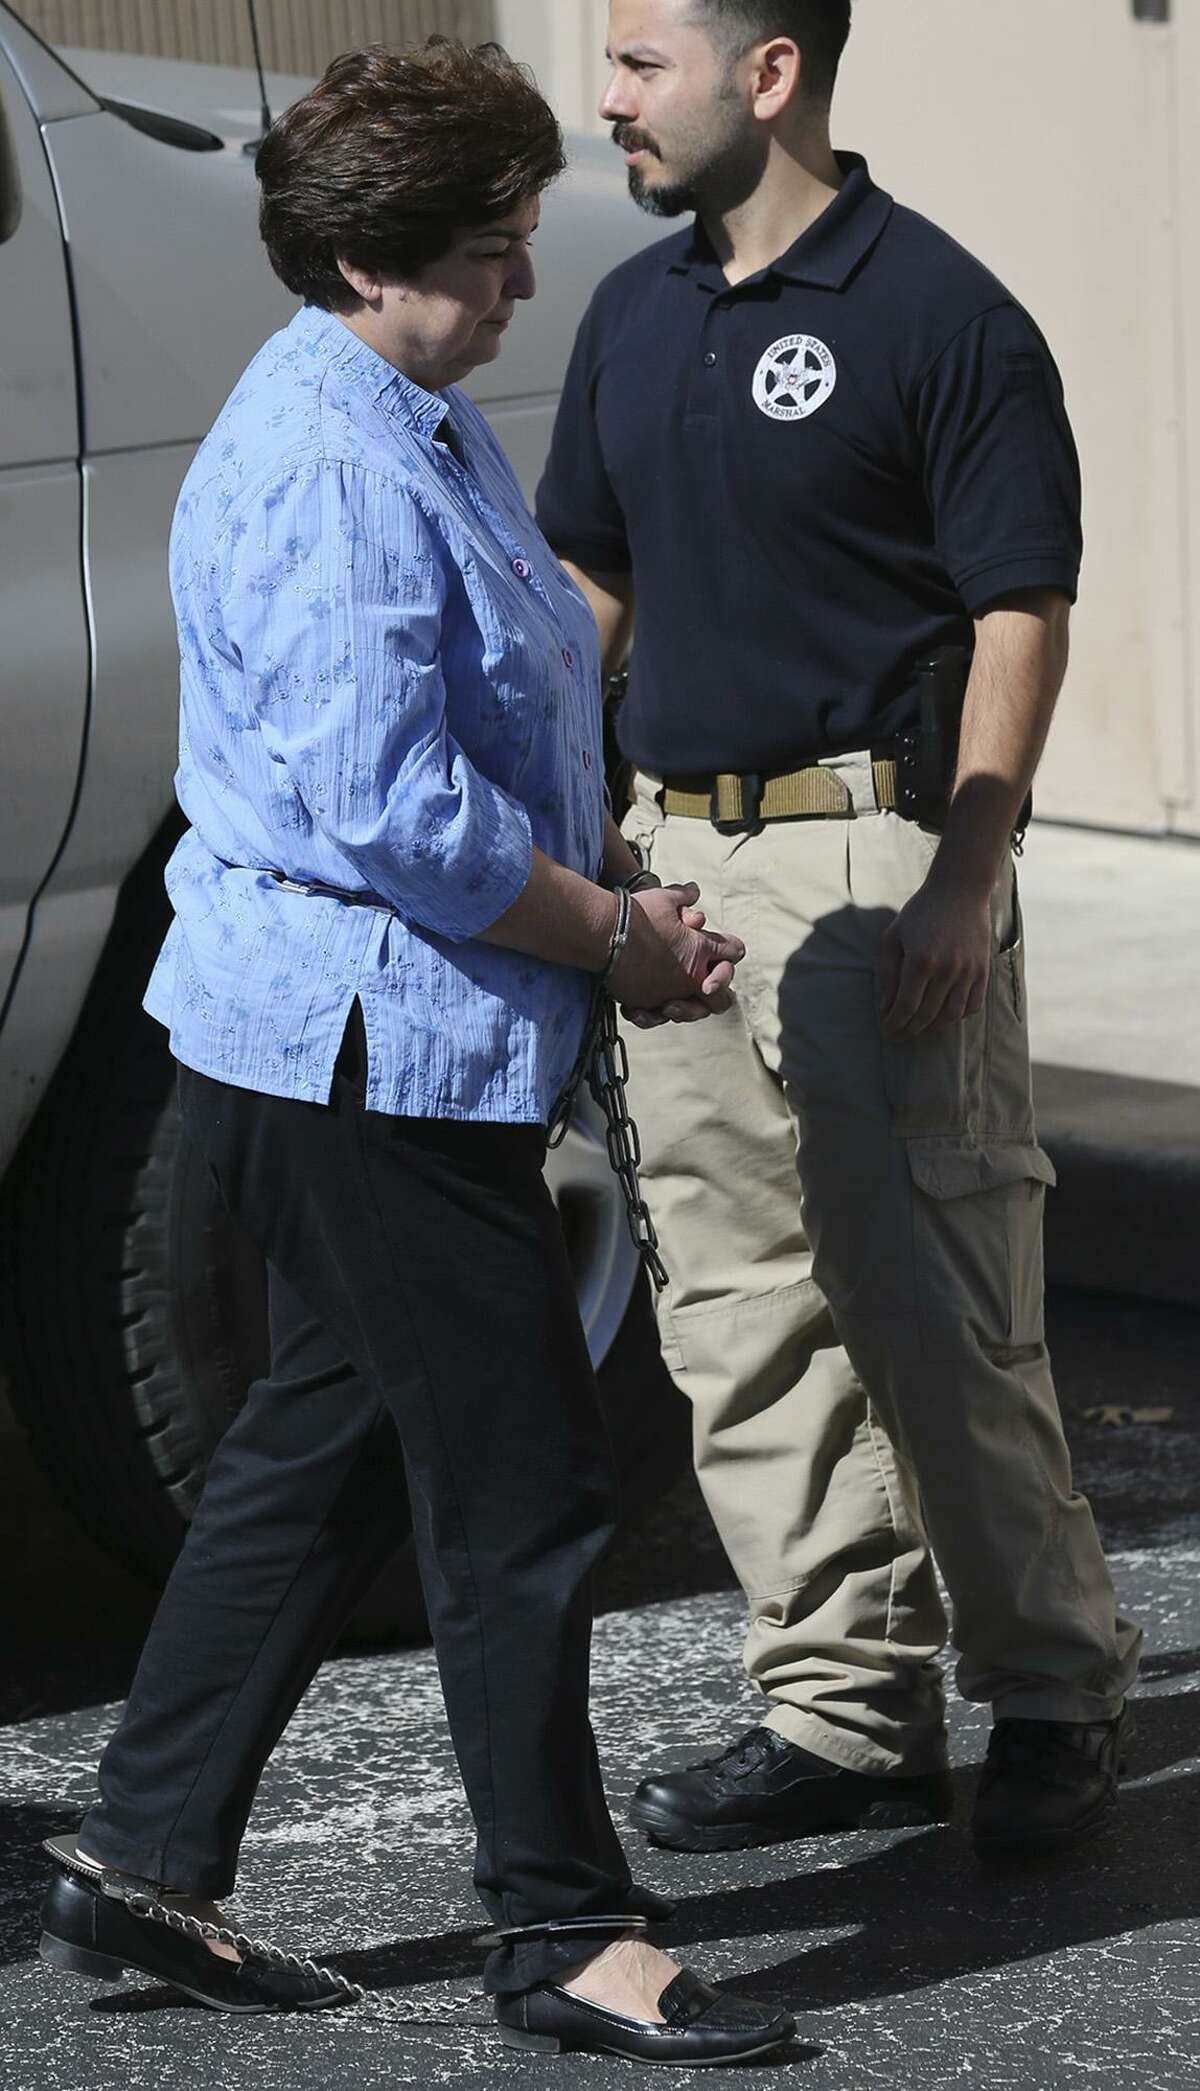 SAISD school board member Olga Hernandez (left) walks from a van Thursday February 16, 2017 to the John H. Wood, Jr. Federal Courthouse. Hernandez was picked up by the FBI in a public corruption case.